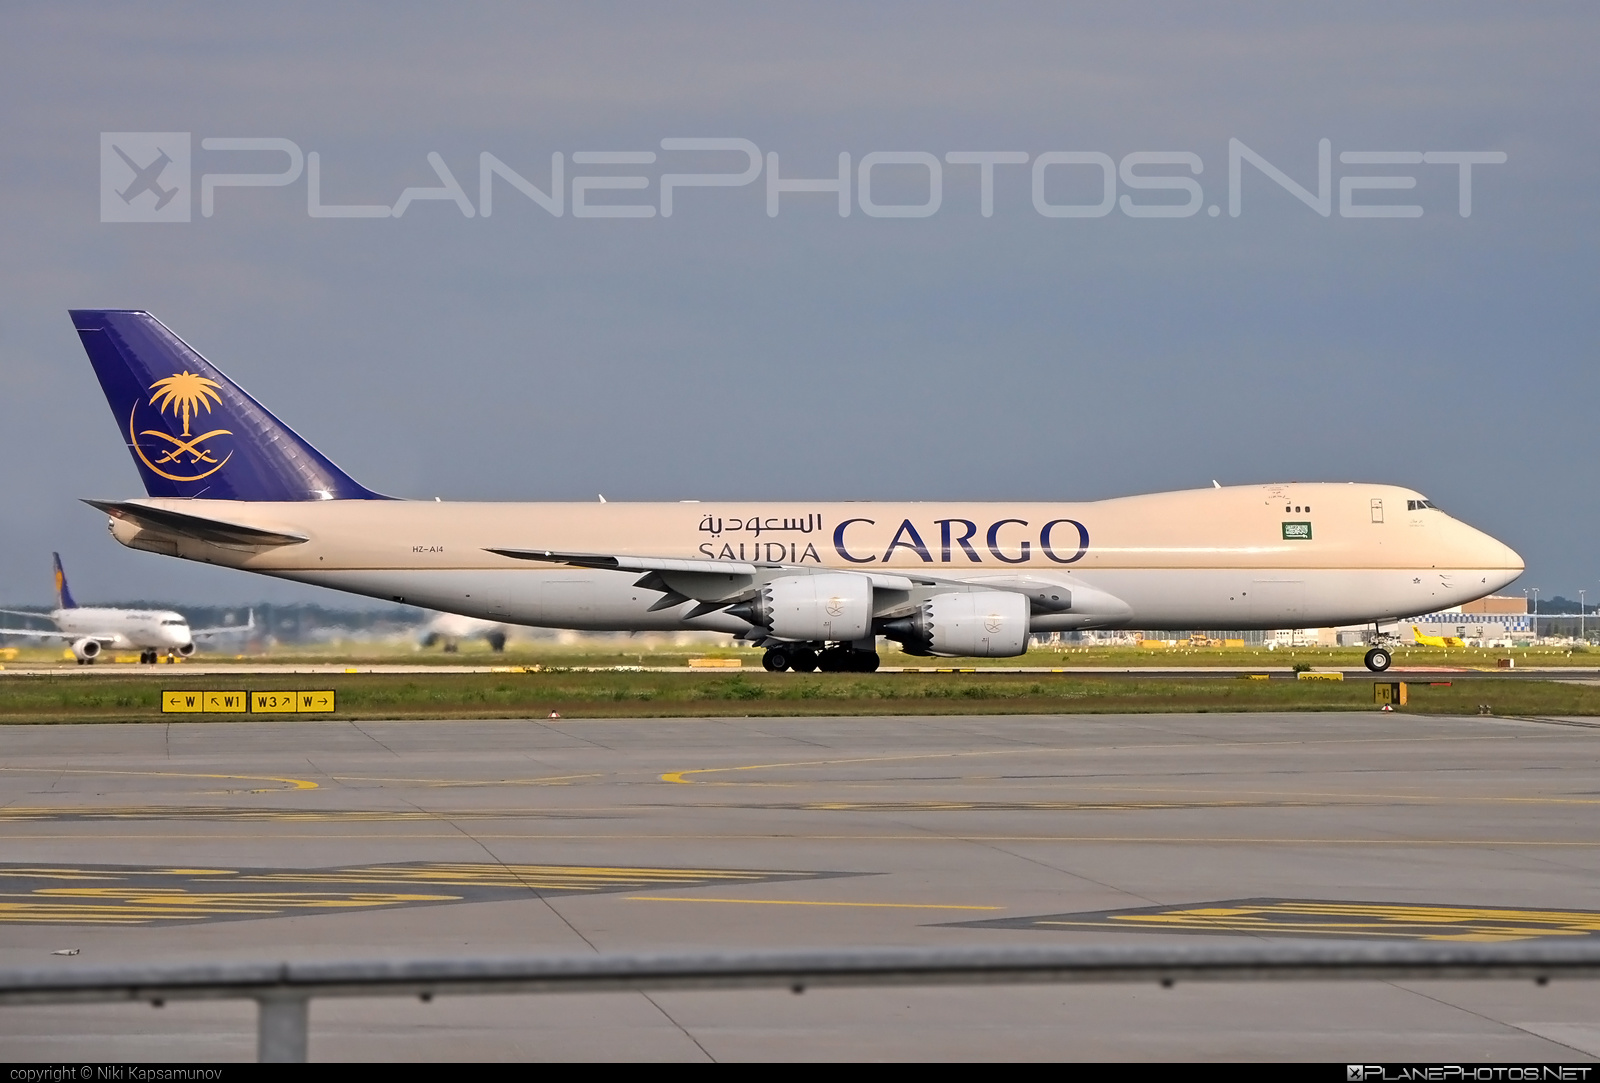 Boeing 747-8F - HZ-AI4 operated by Saudi Arabian Airlines Cargo #b747 #b747f #b747freighter #boeing #boeing747 #jumbo